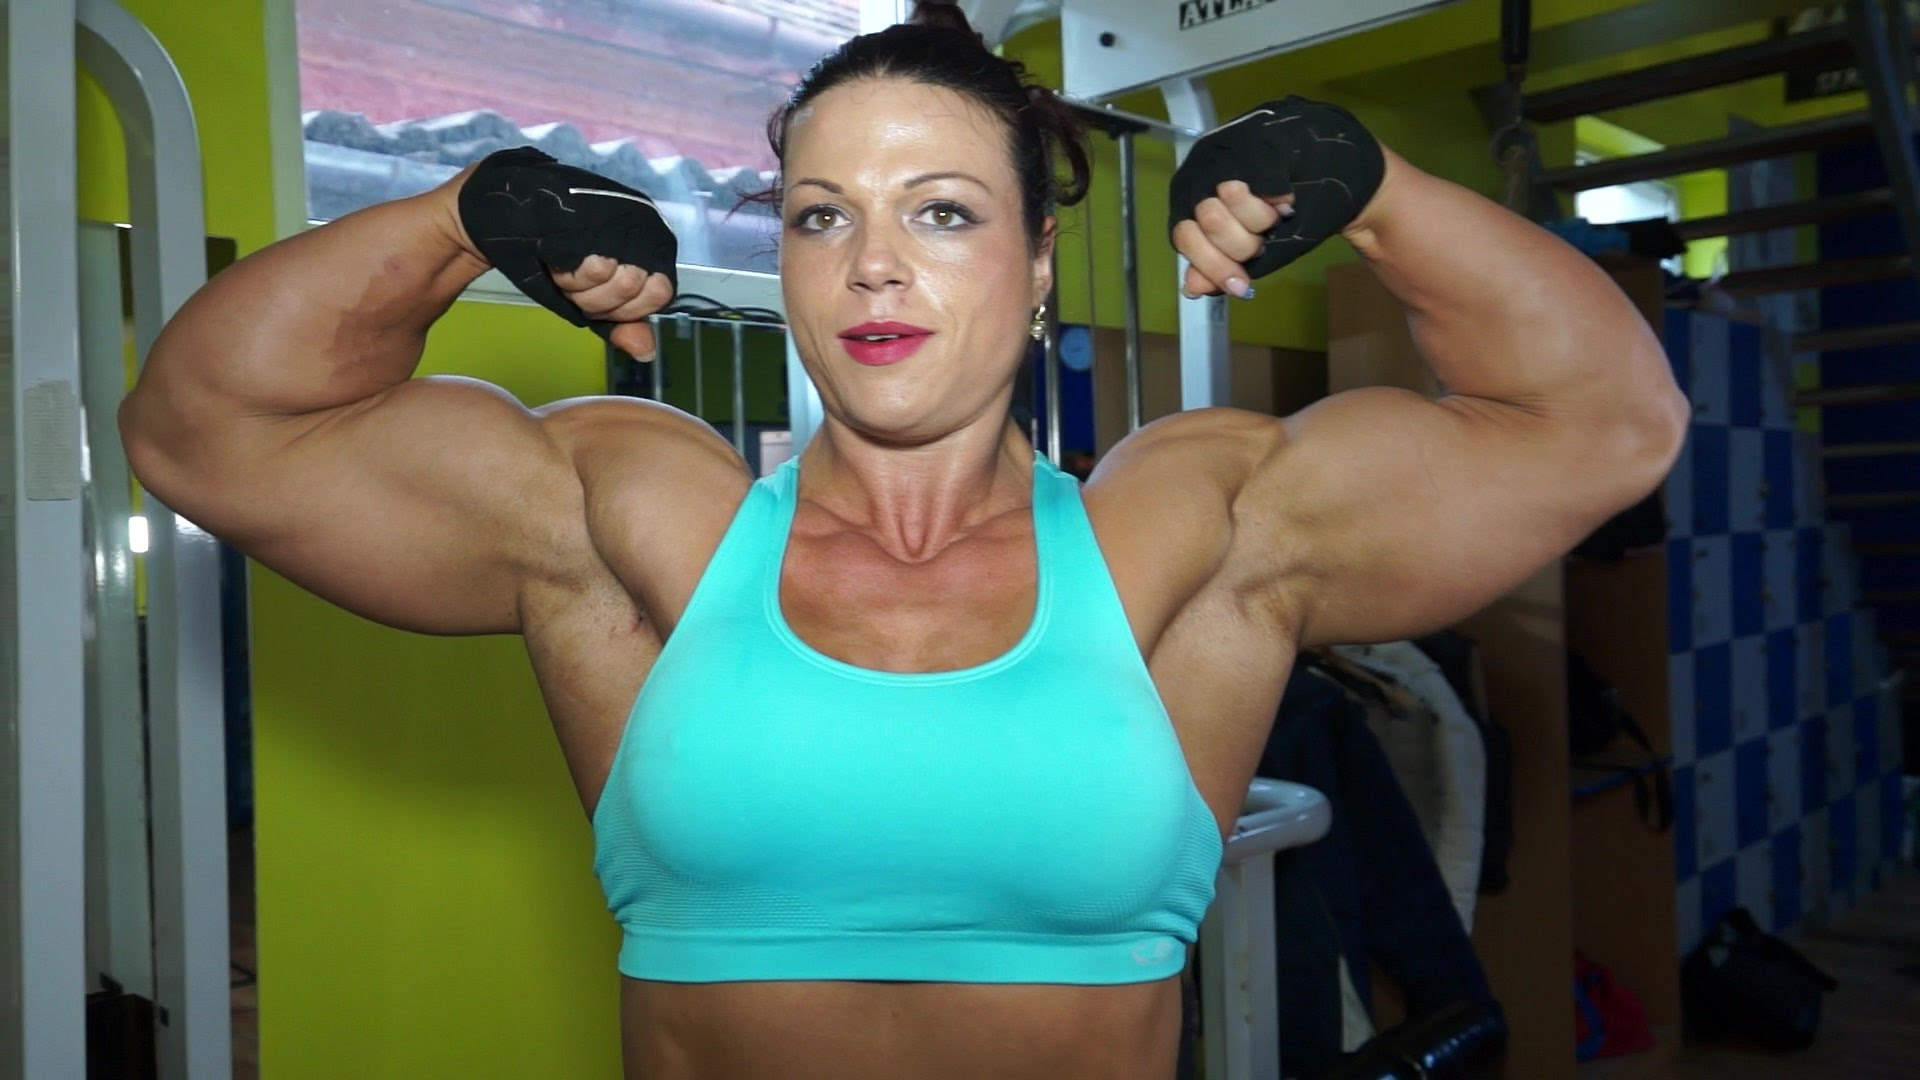 Oana Hreapca Workout